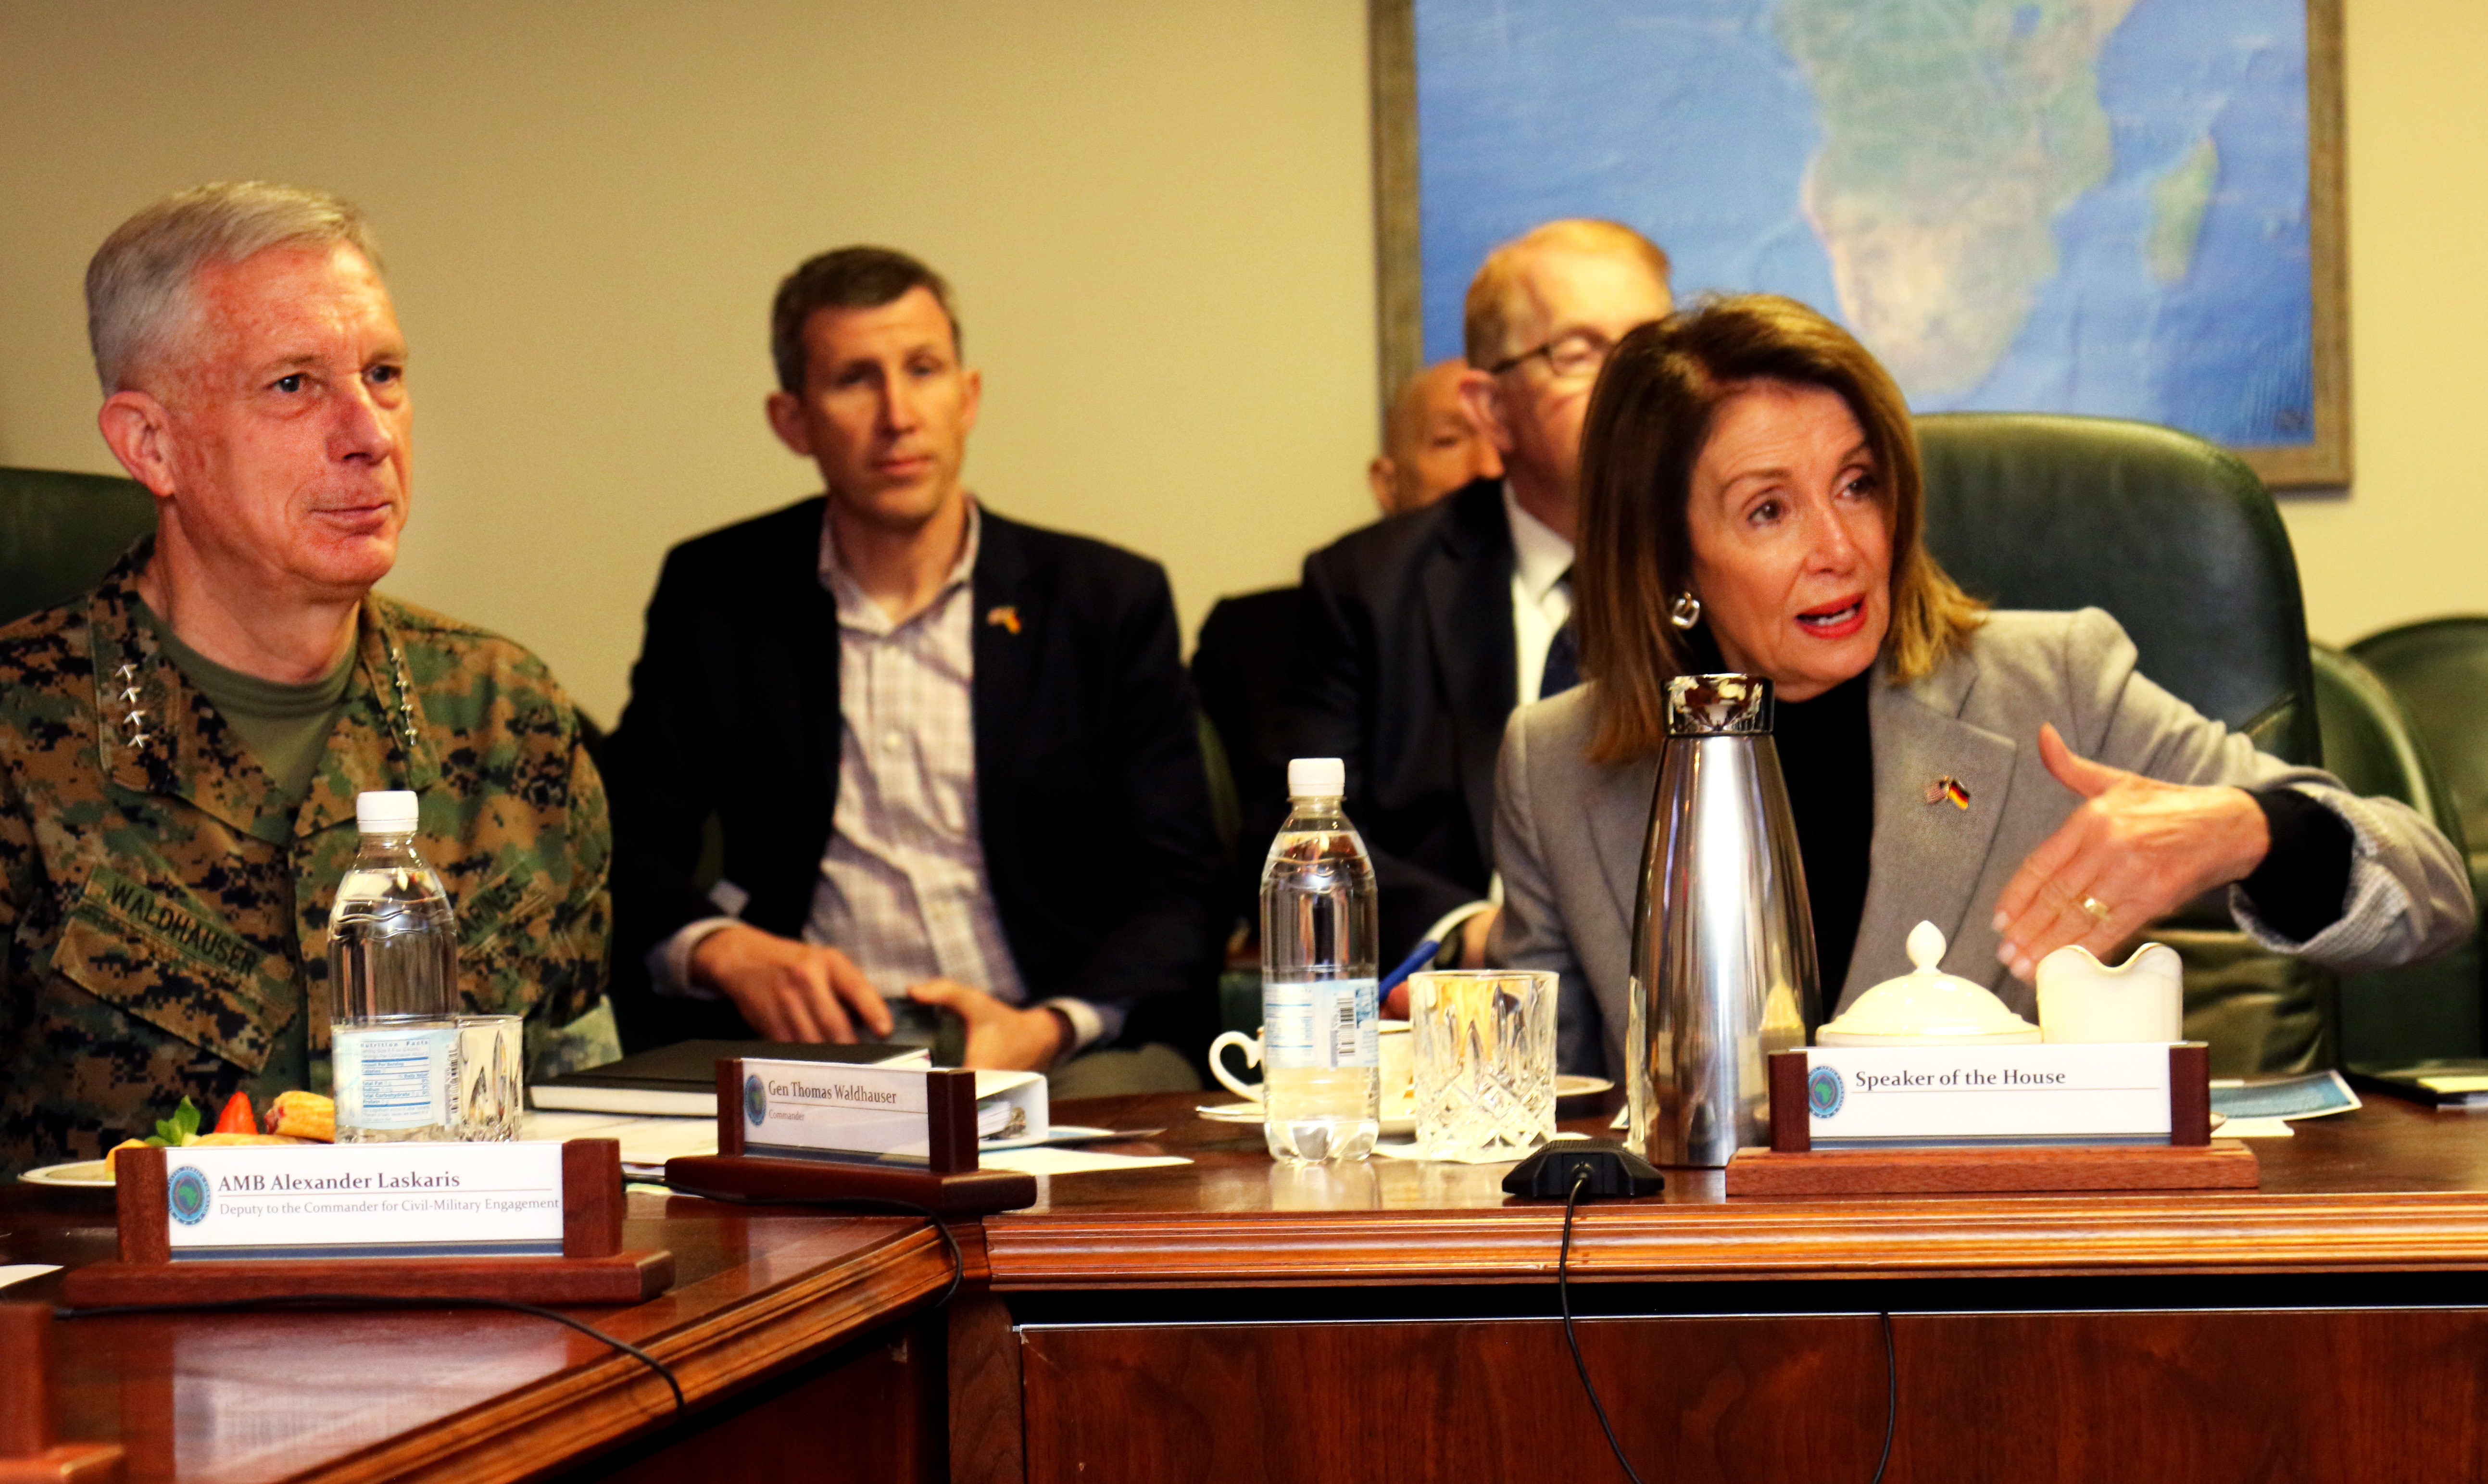 Speaker of the House Nancy Pelosi talks to U.S. Africa Command senior leaders and key personnel during a visit April 13, 2019 in Stuttgart, Germany. A group of congressional delegates including Pelosi visited AFRICOM to gain insight on the command's operations and activities supporting the U.S. strategy for Africa. (U.S. Army photo by Nate Herring/Released)